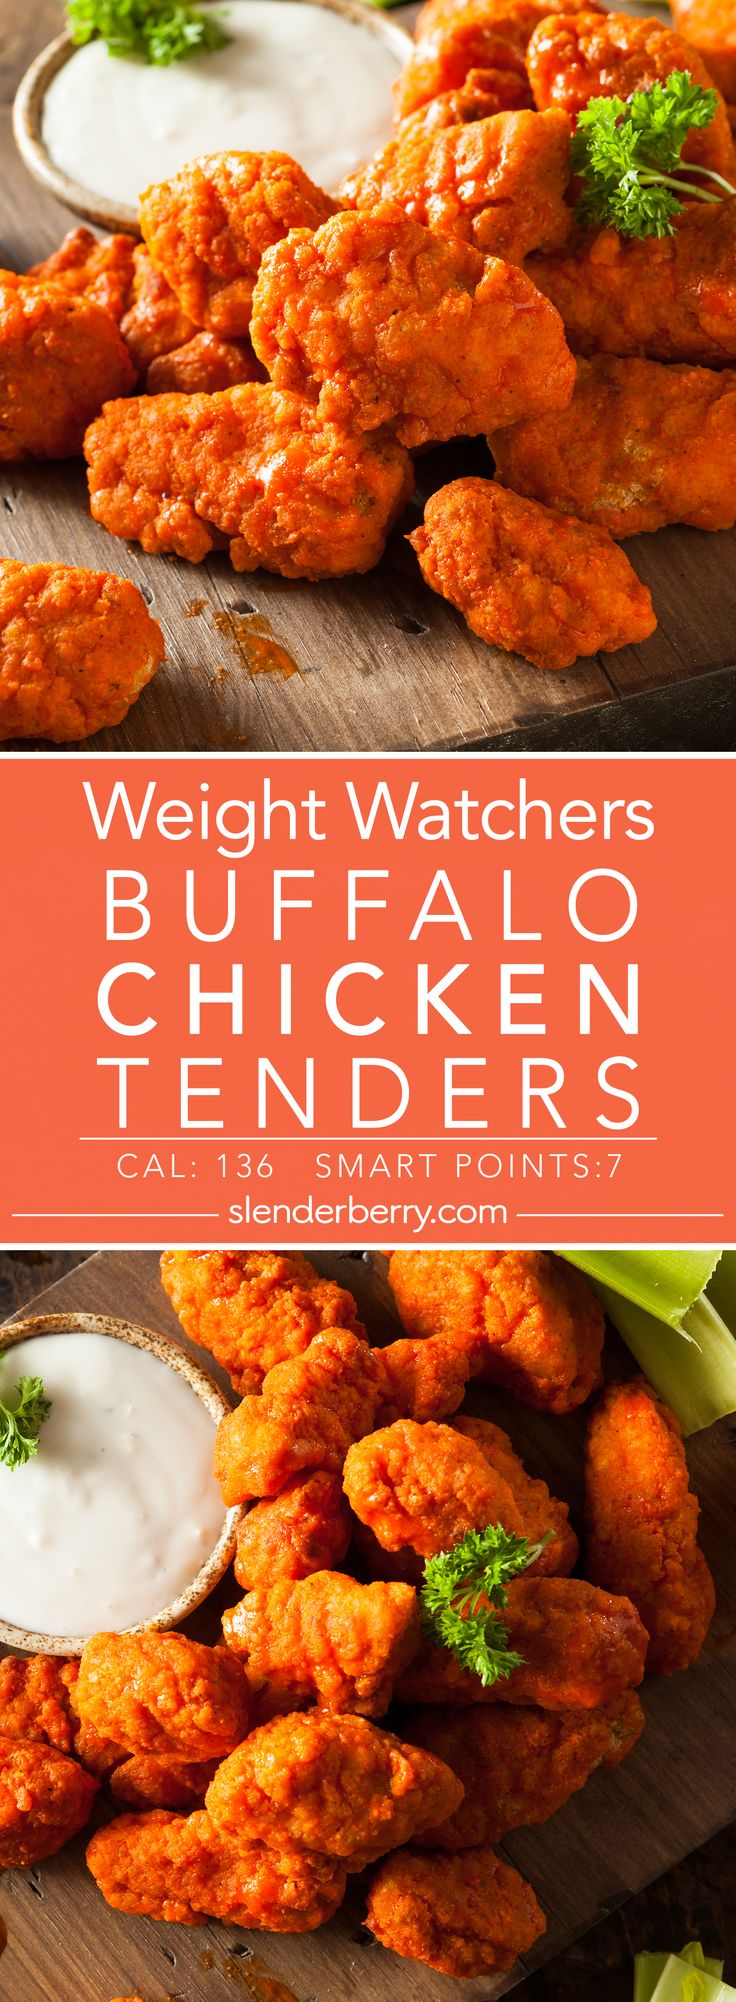 Weight Watchers Buffalo Chicken Tenders Recipe - 7 Smart Points 136 Calories